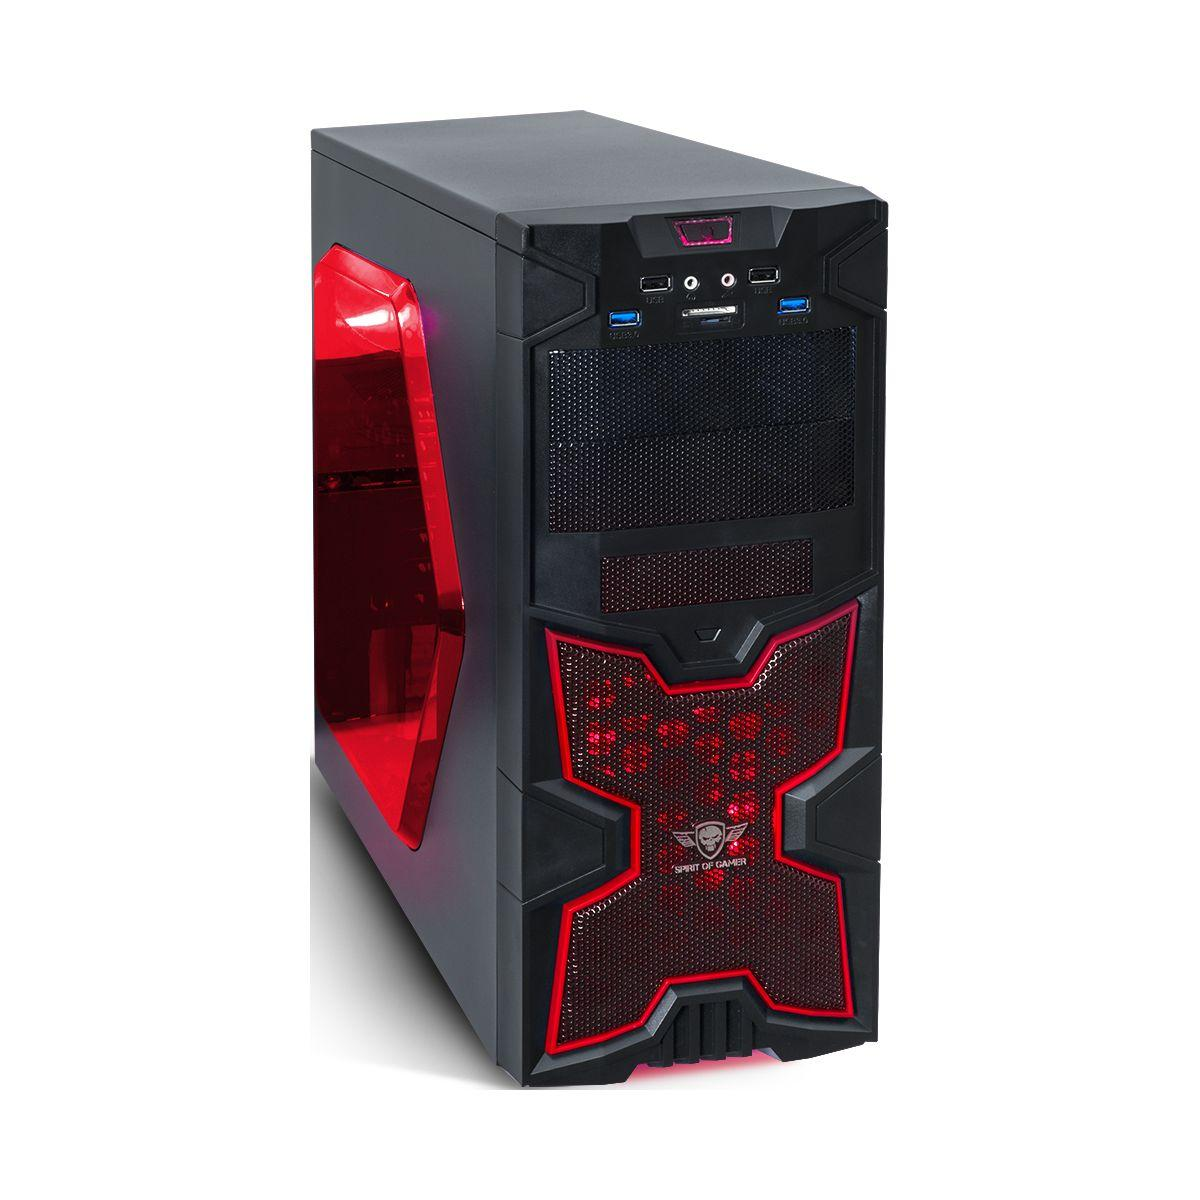 Boitier pc spirit of gamer x-fighters 41 red victory tour - 2% de remise imm�diate avec le code : fete2 (photo)